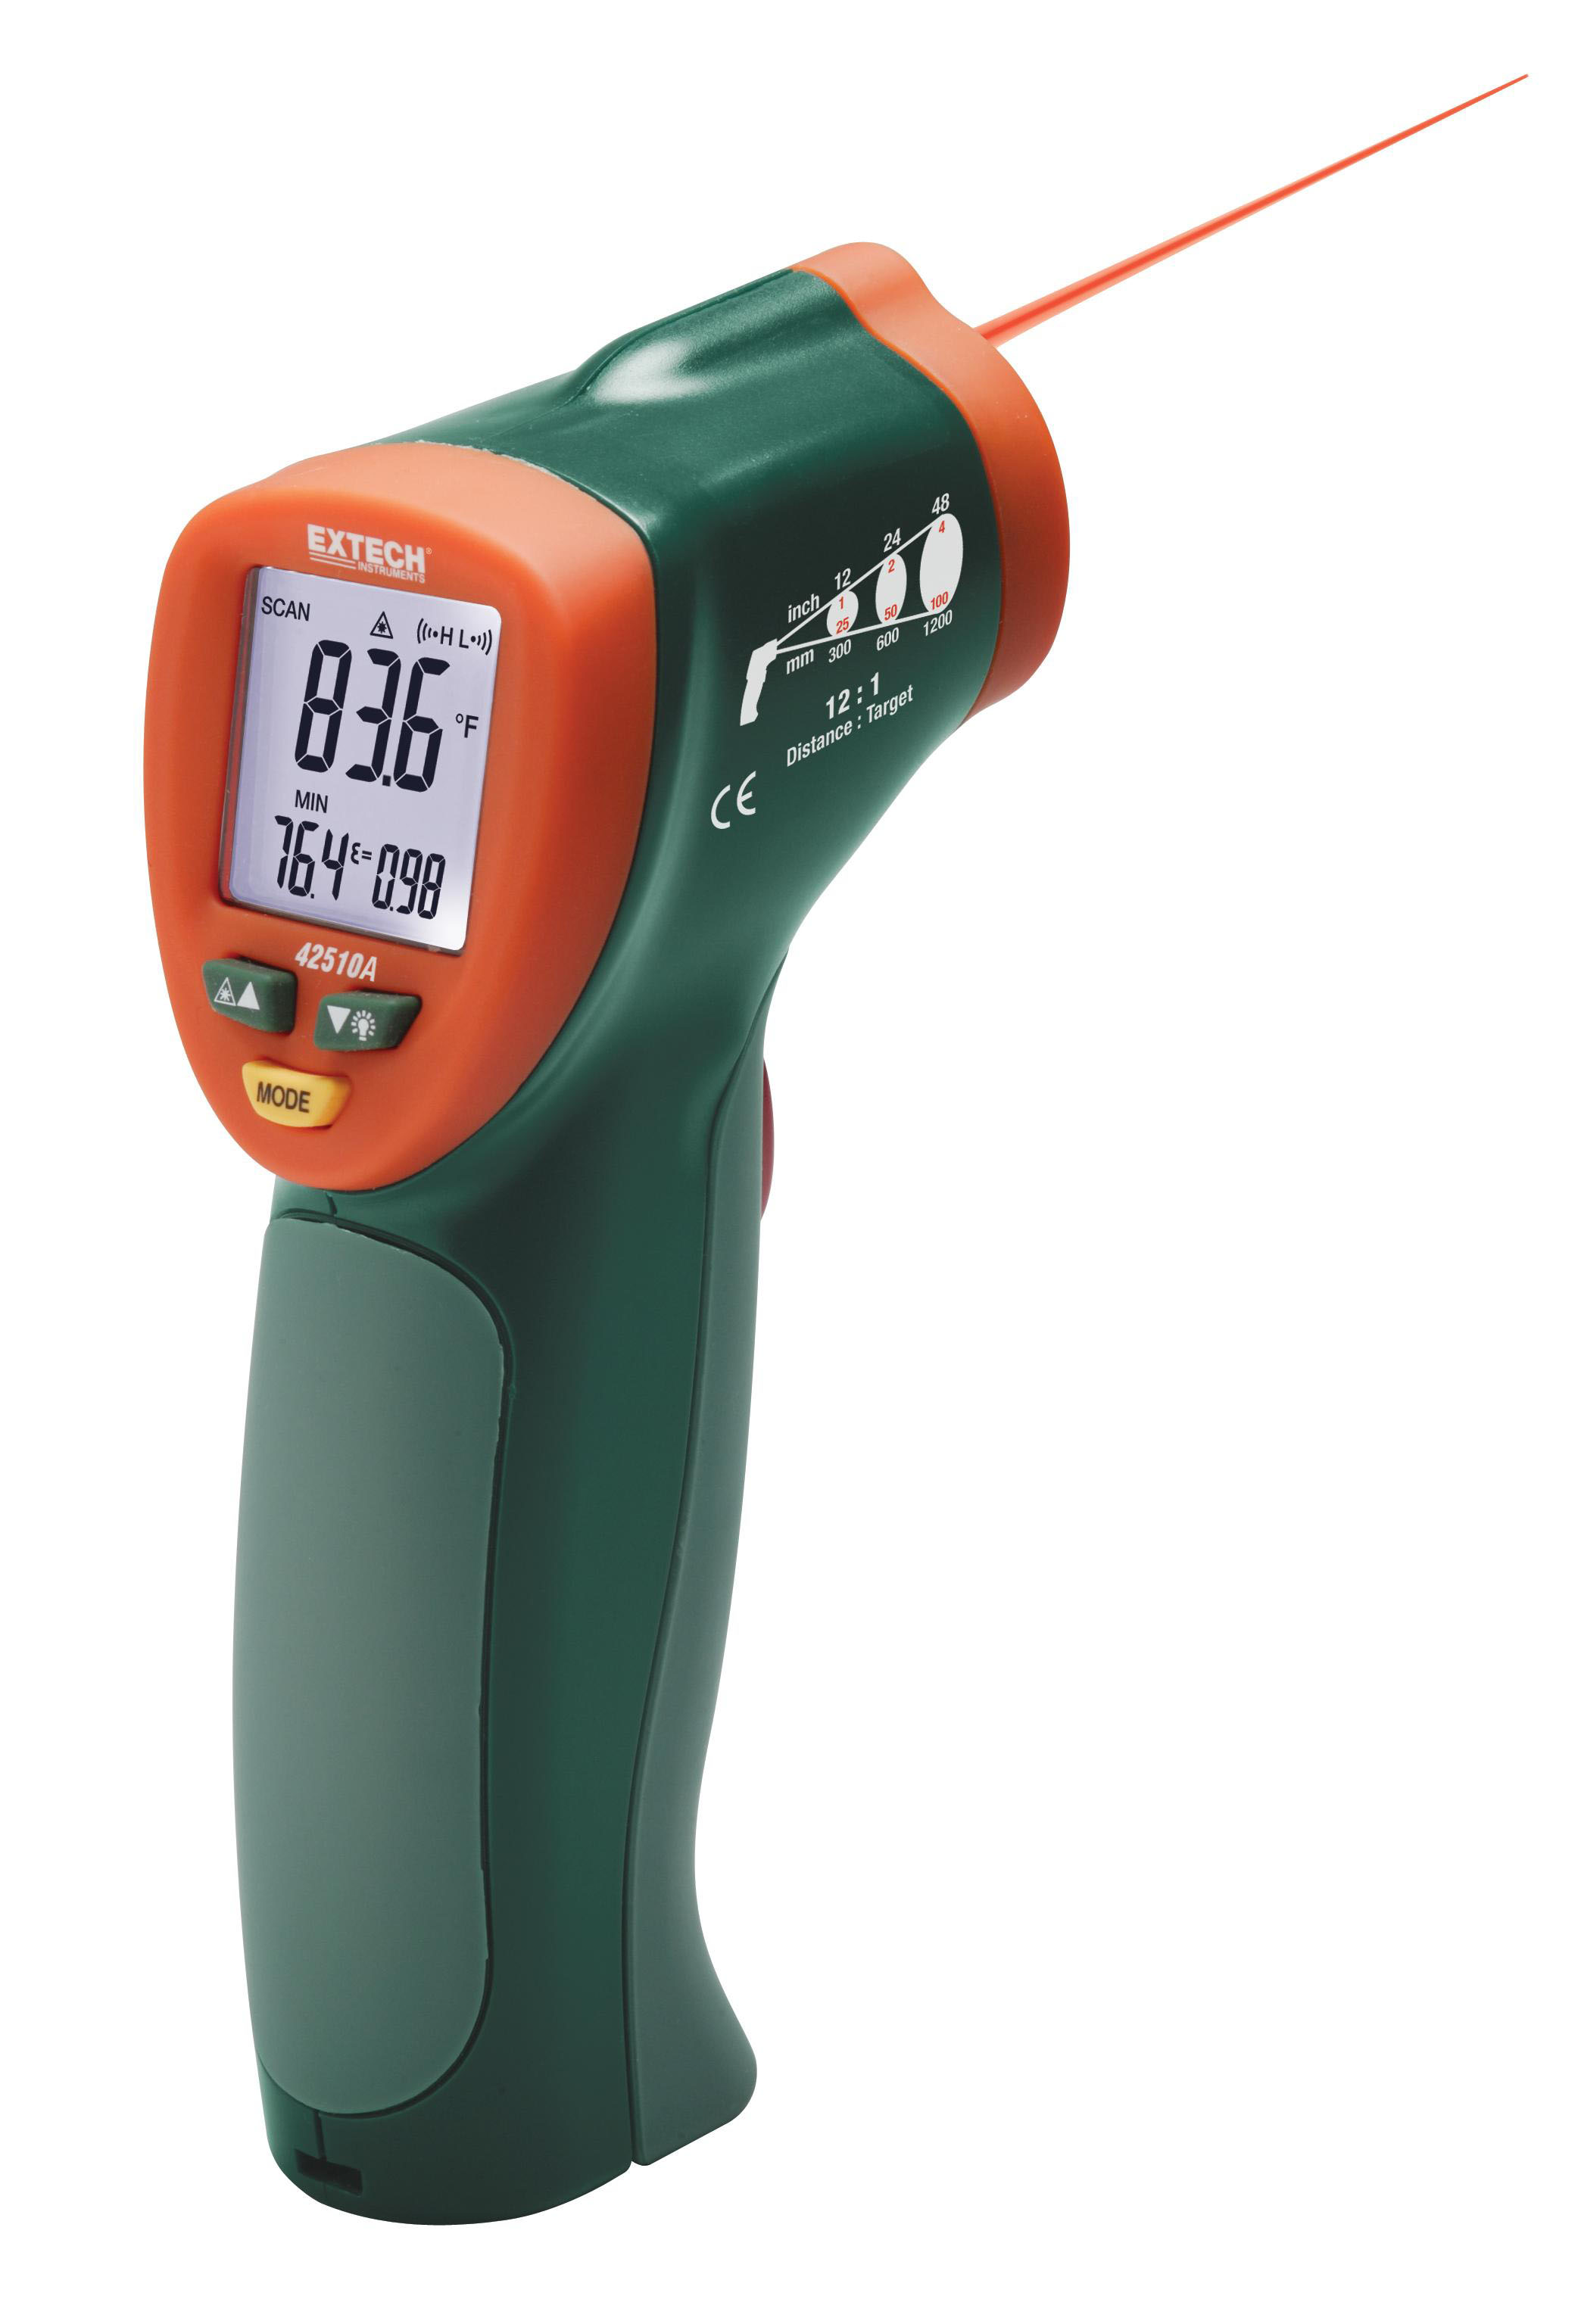 EXTECH 42510A - Wide Range Mini IR Thermometer -50°C to 650°C